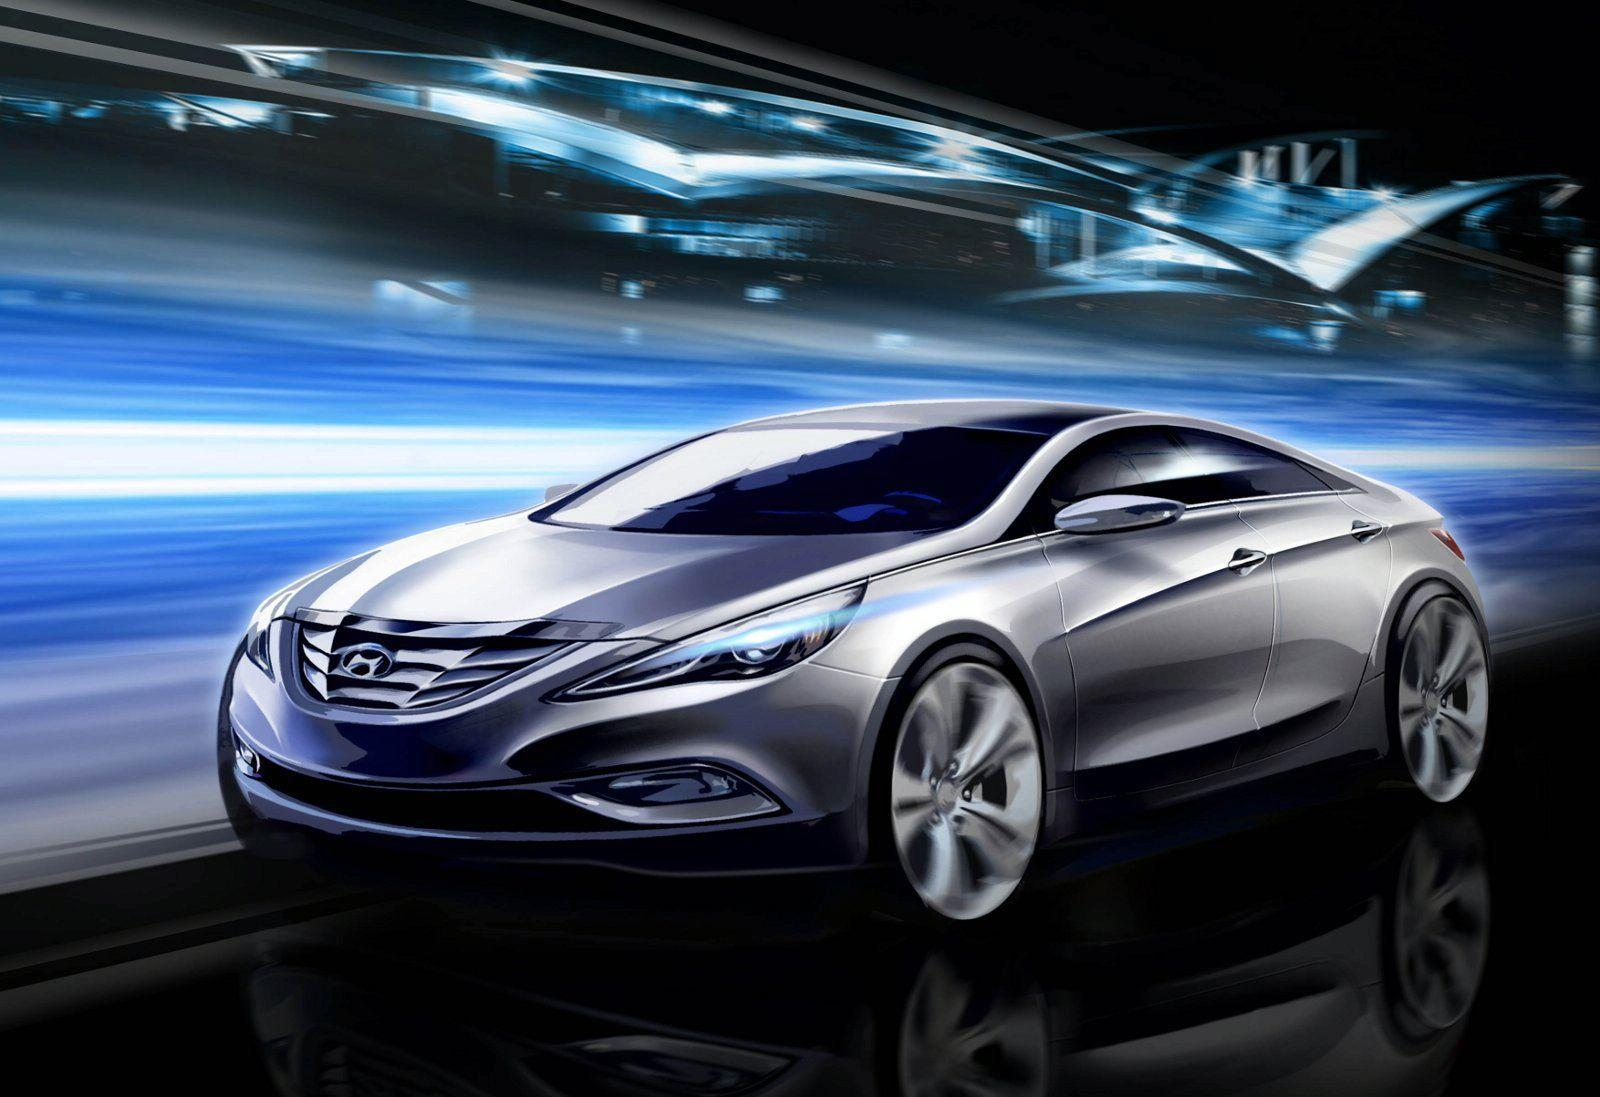 Hyundai Sonata Wallpapers